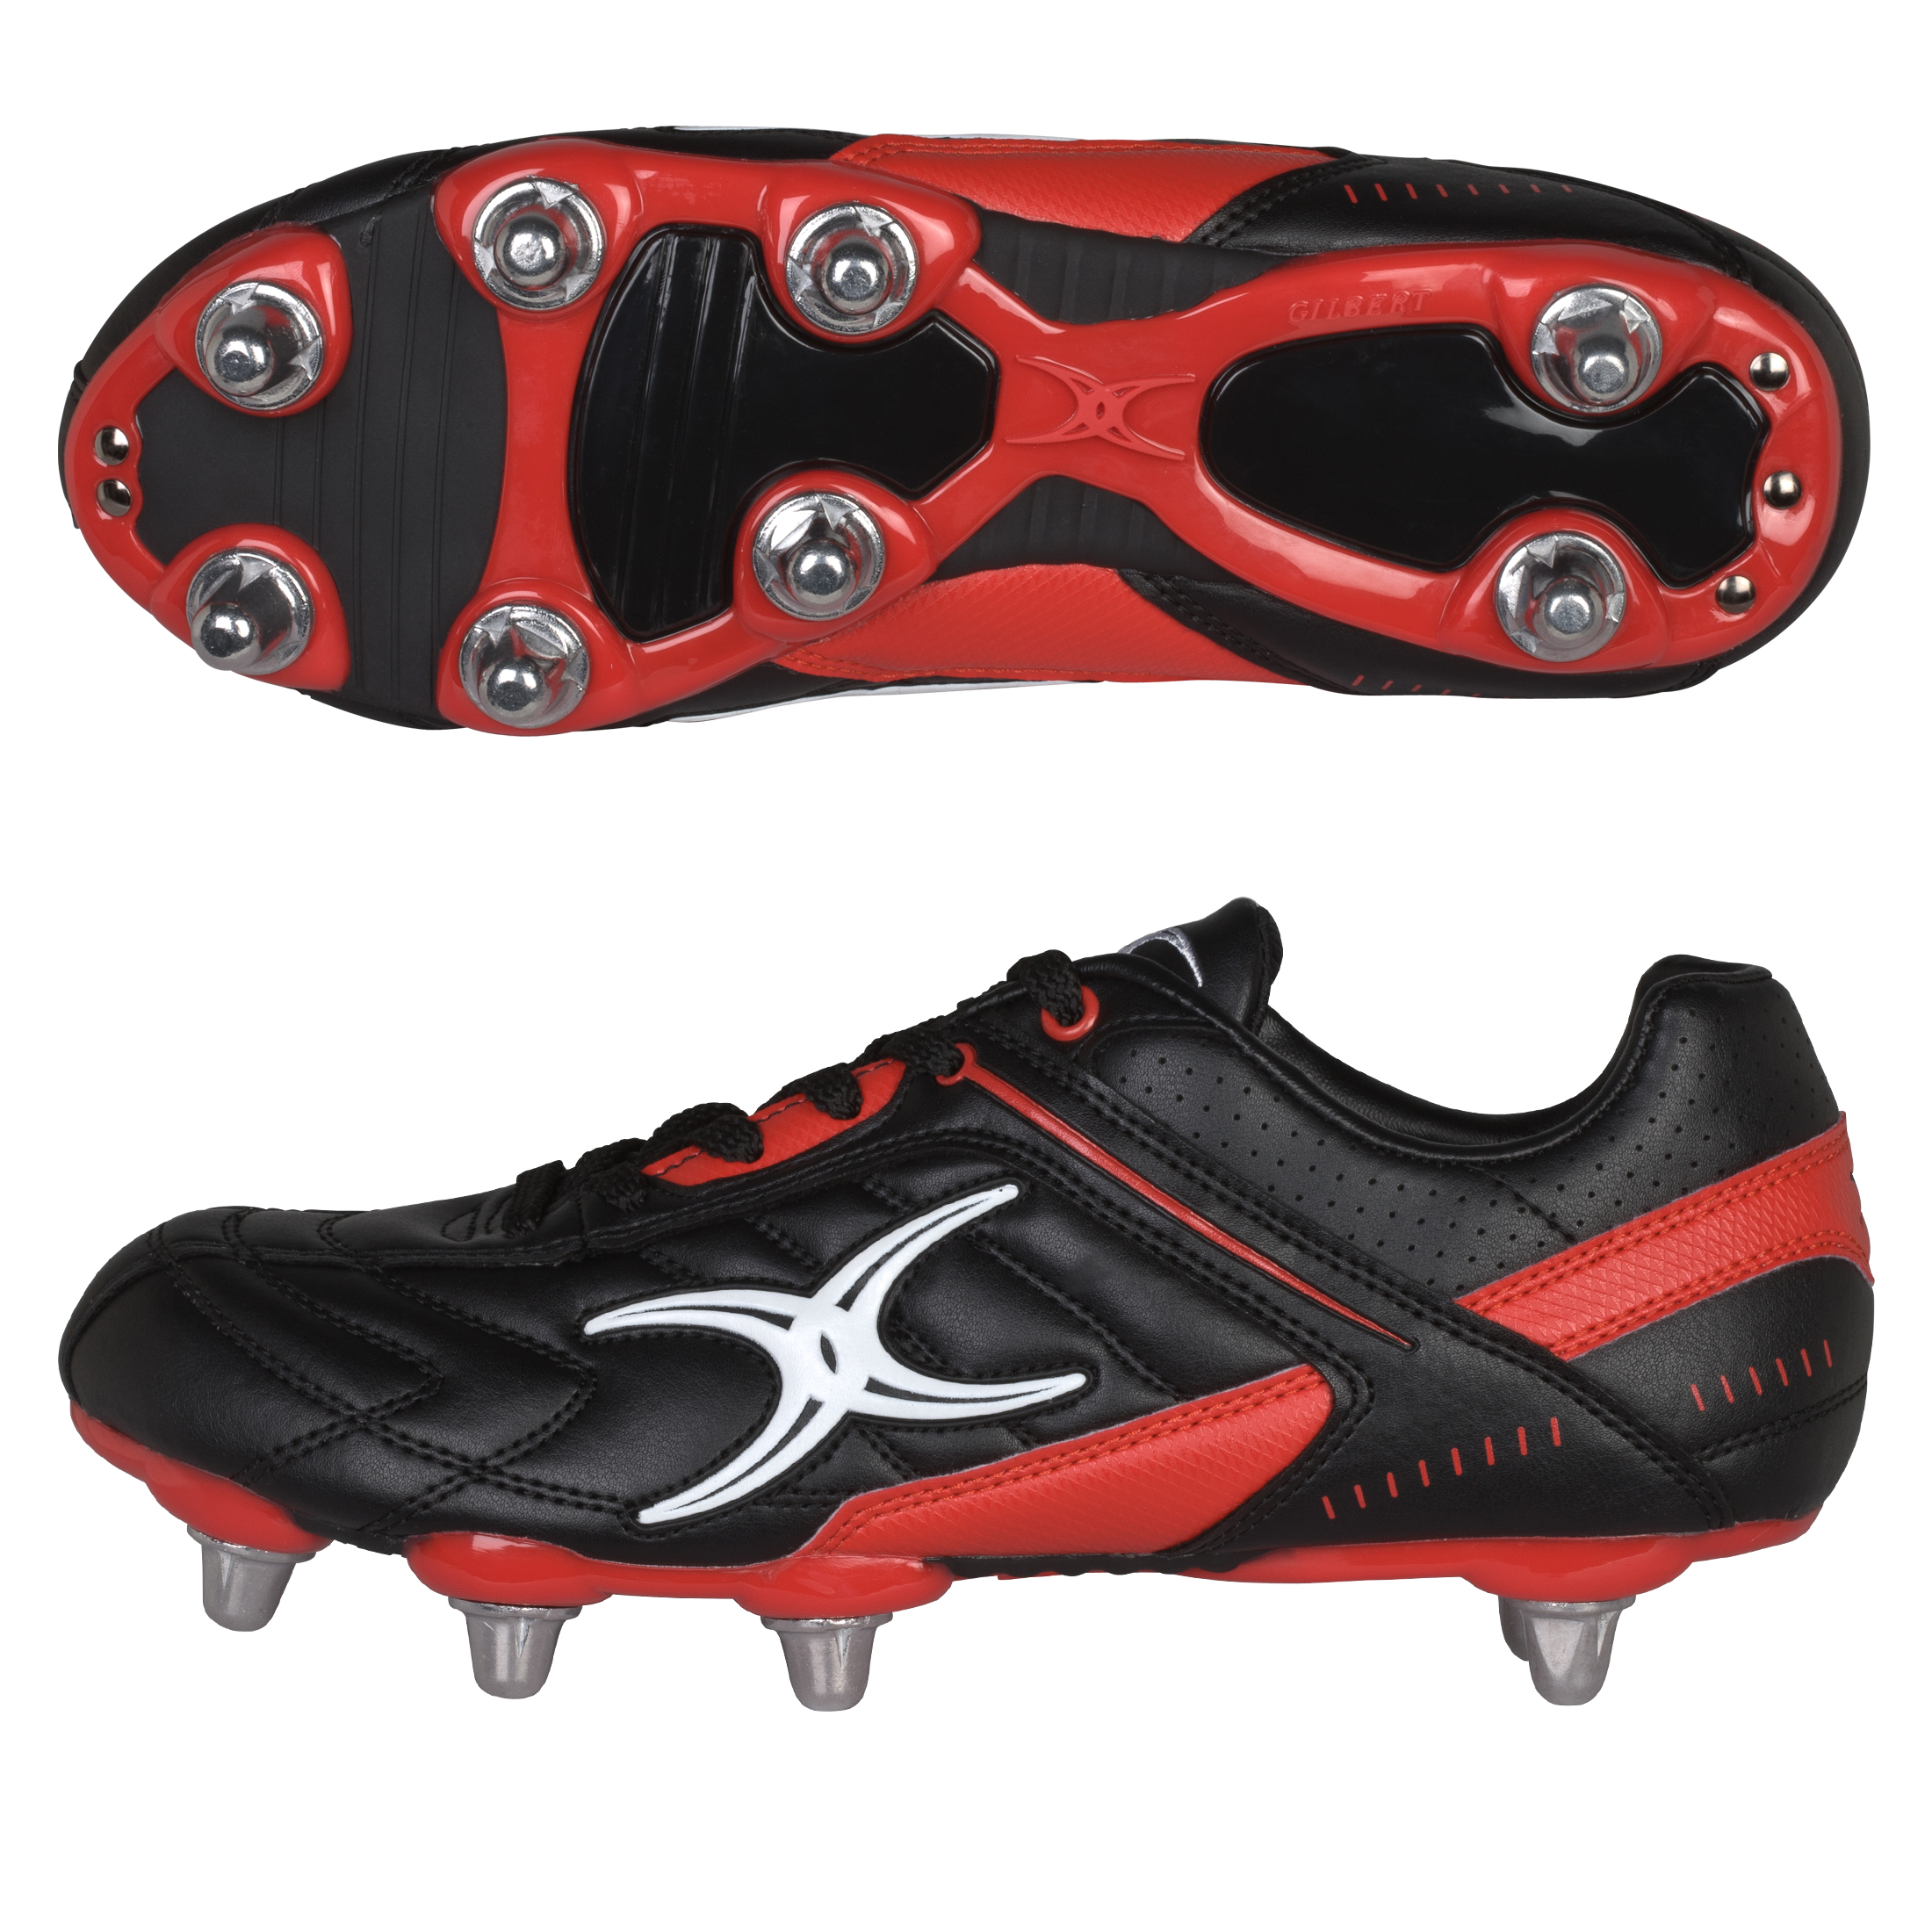 Gilbert Sidestep Barbarian Rugby Boots - Black/Red